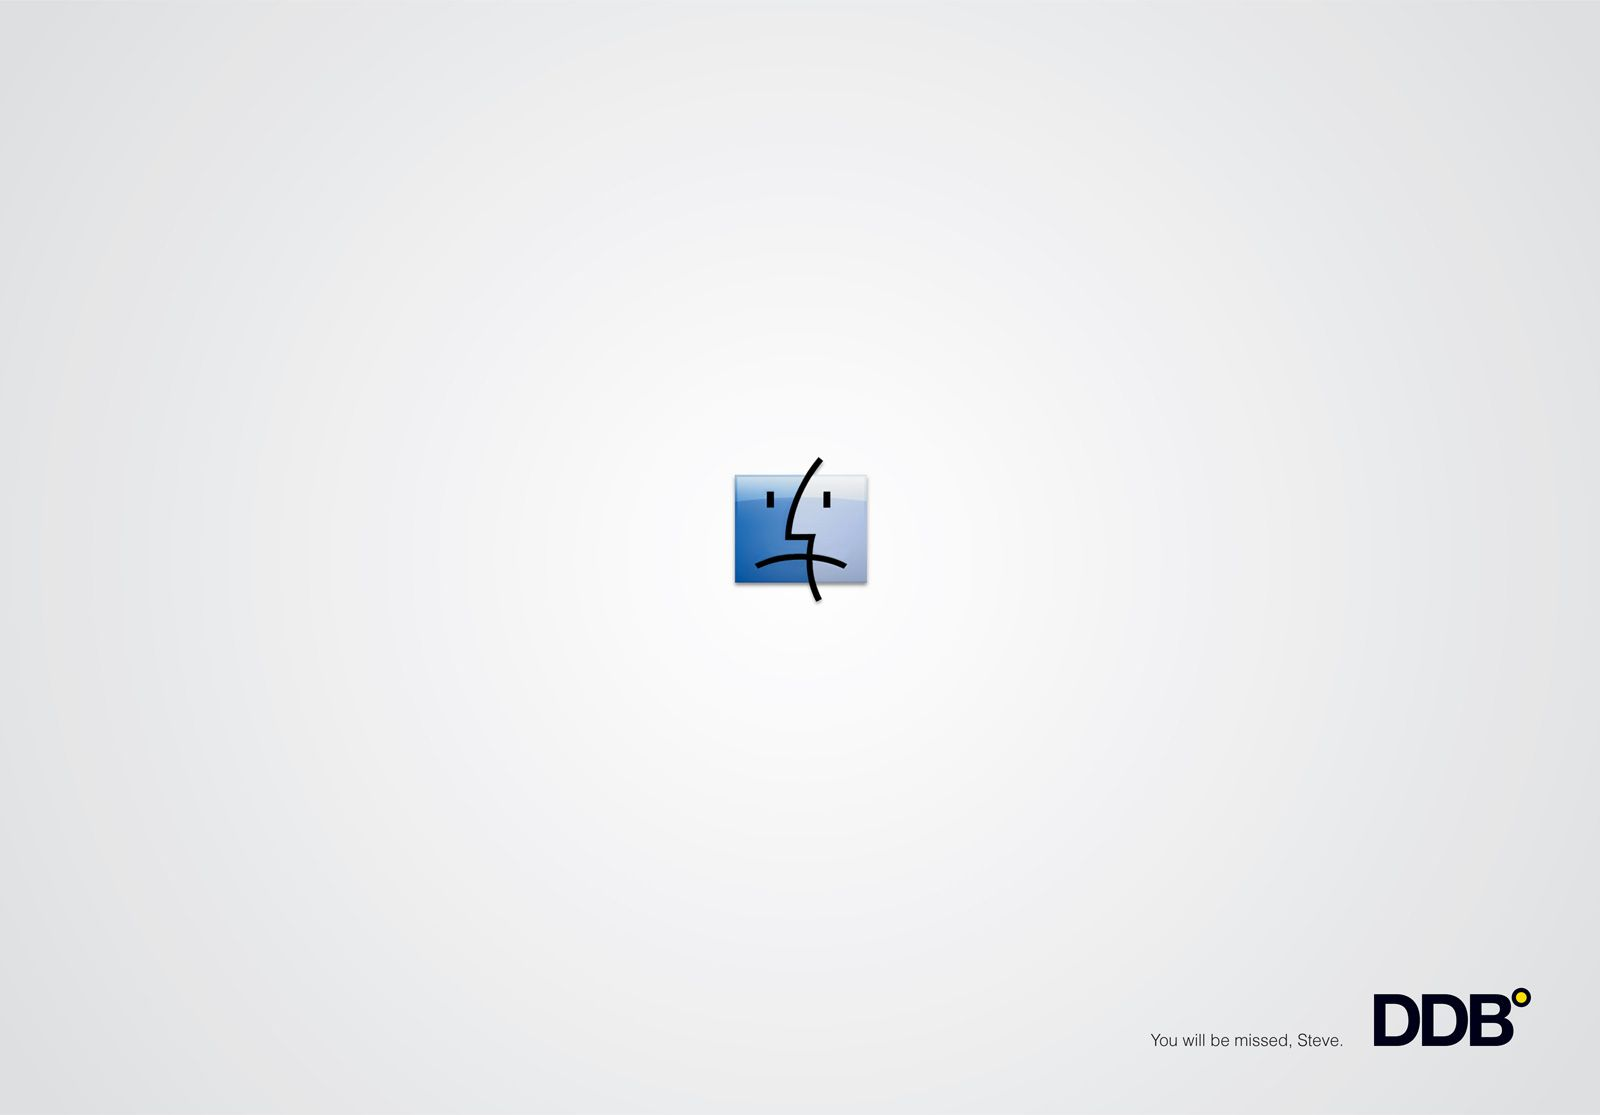 DDB: Homage to Steve Jobs, Sad face You'll be missed, Steve.